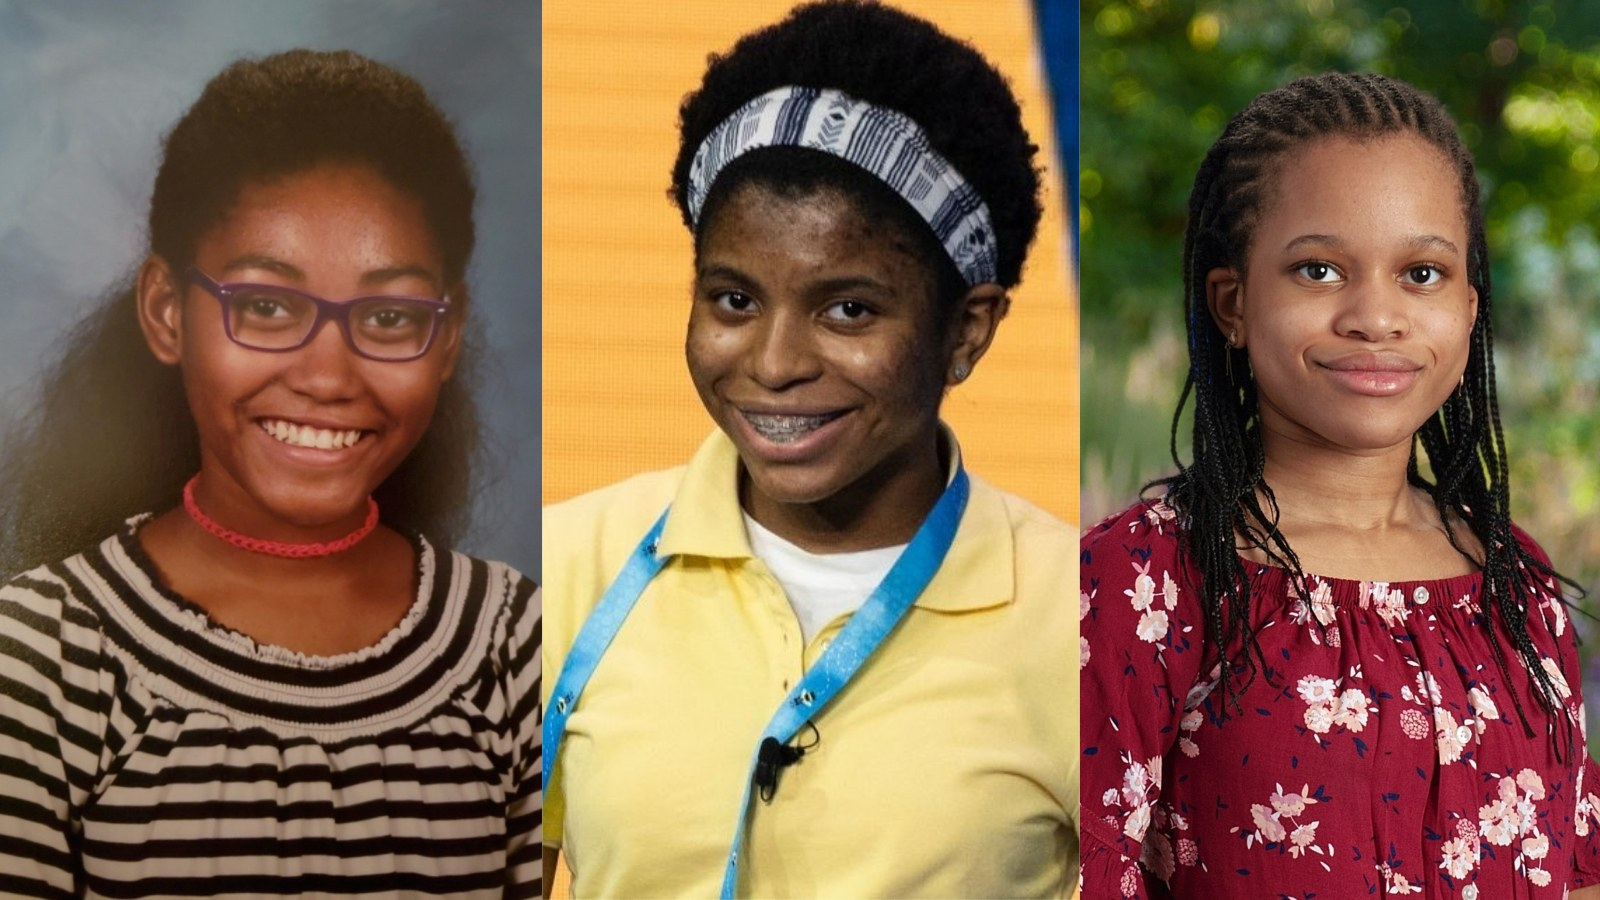 Zaila's Black Girl Magic Is Not An A-N-O-M-A-L-Y: 5 Other Young Black Spelling Champs From The South